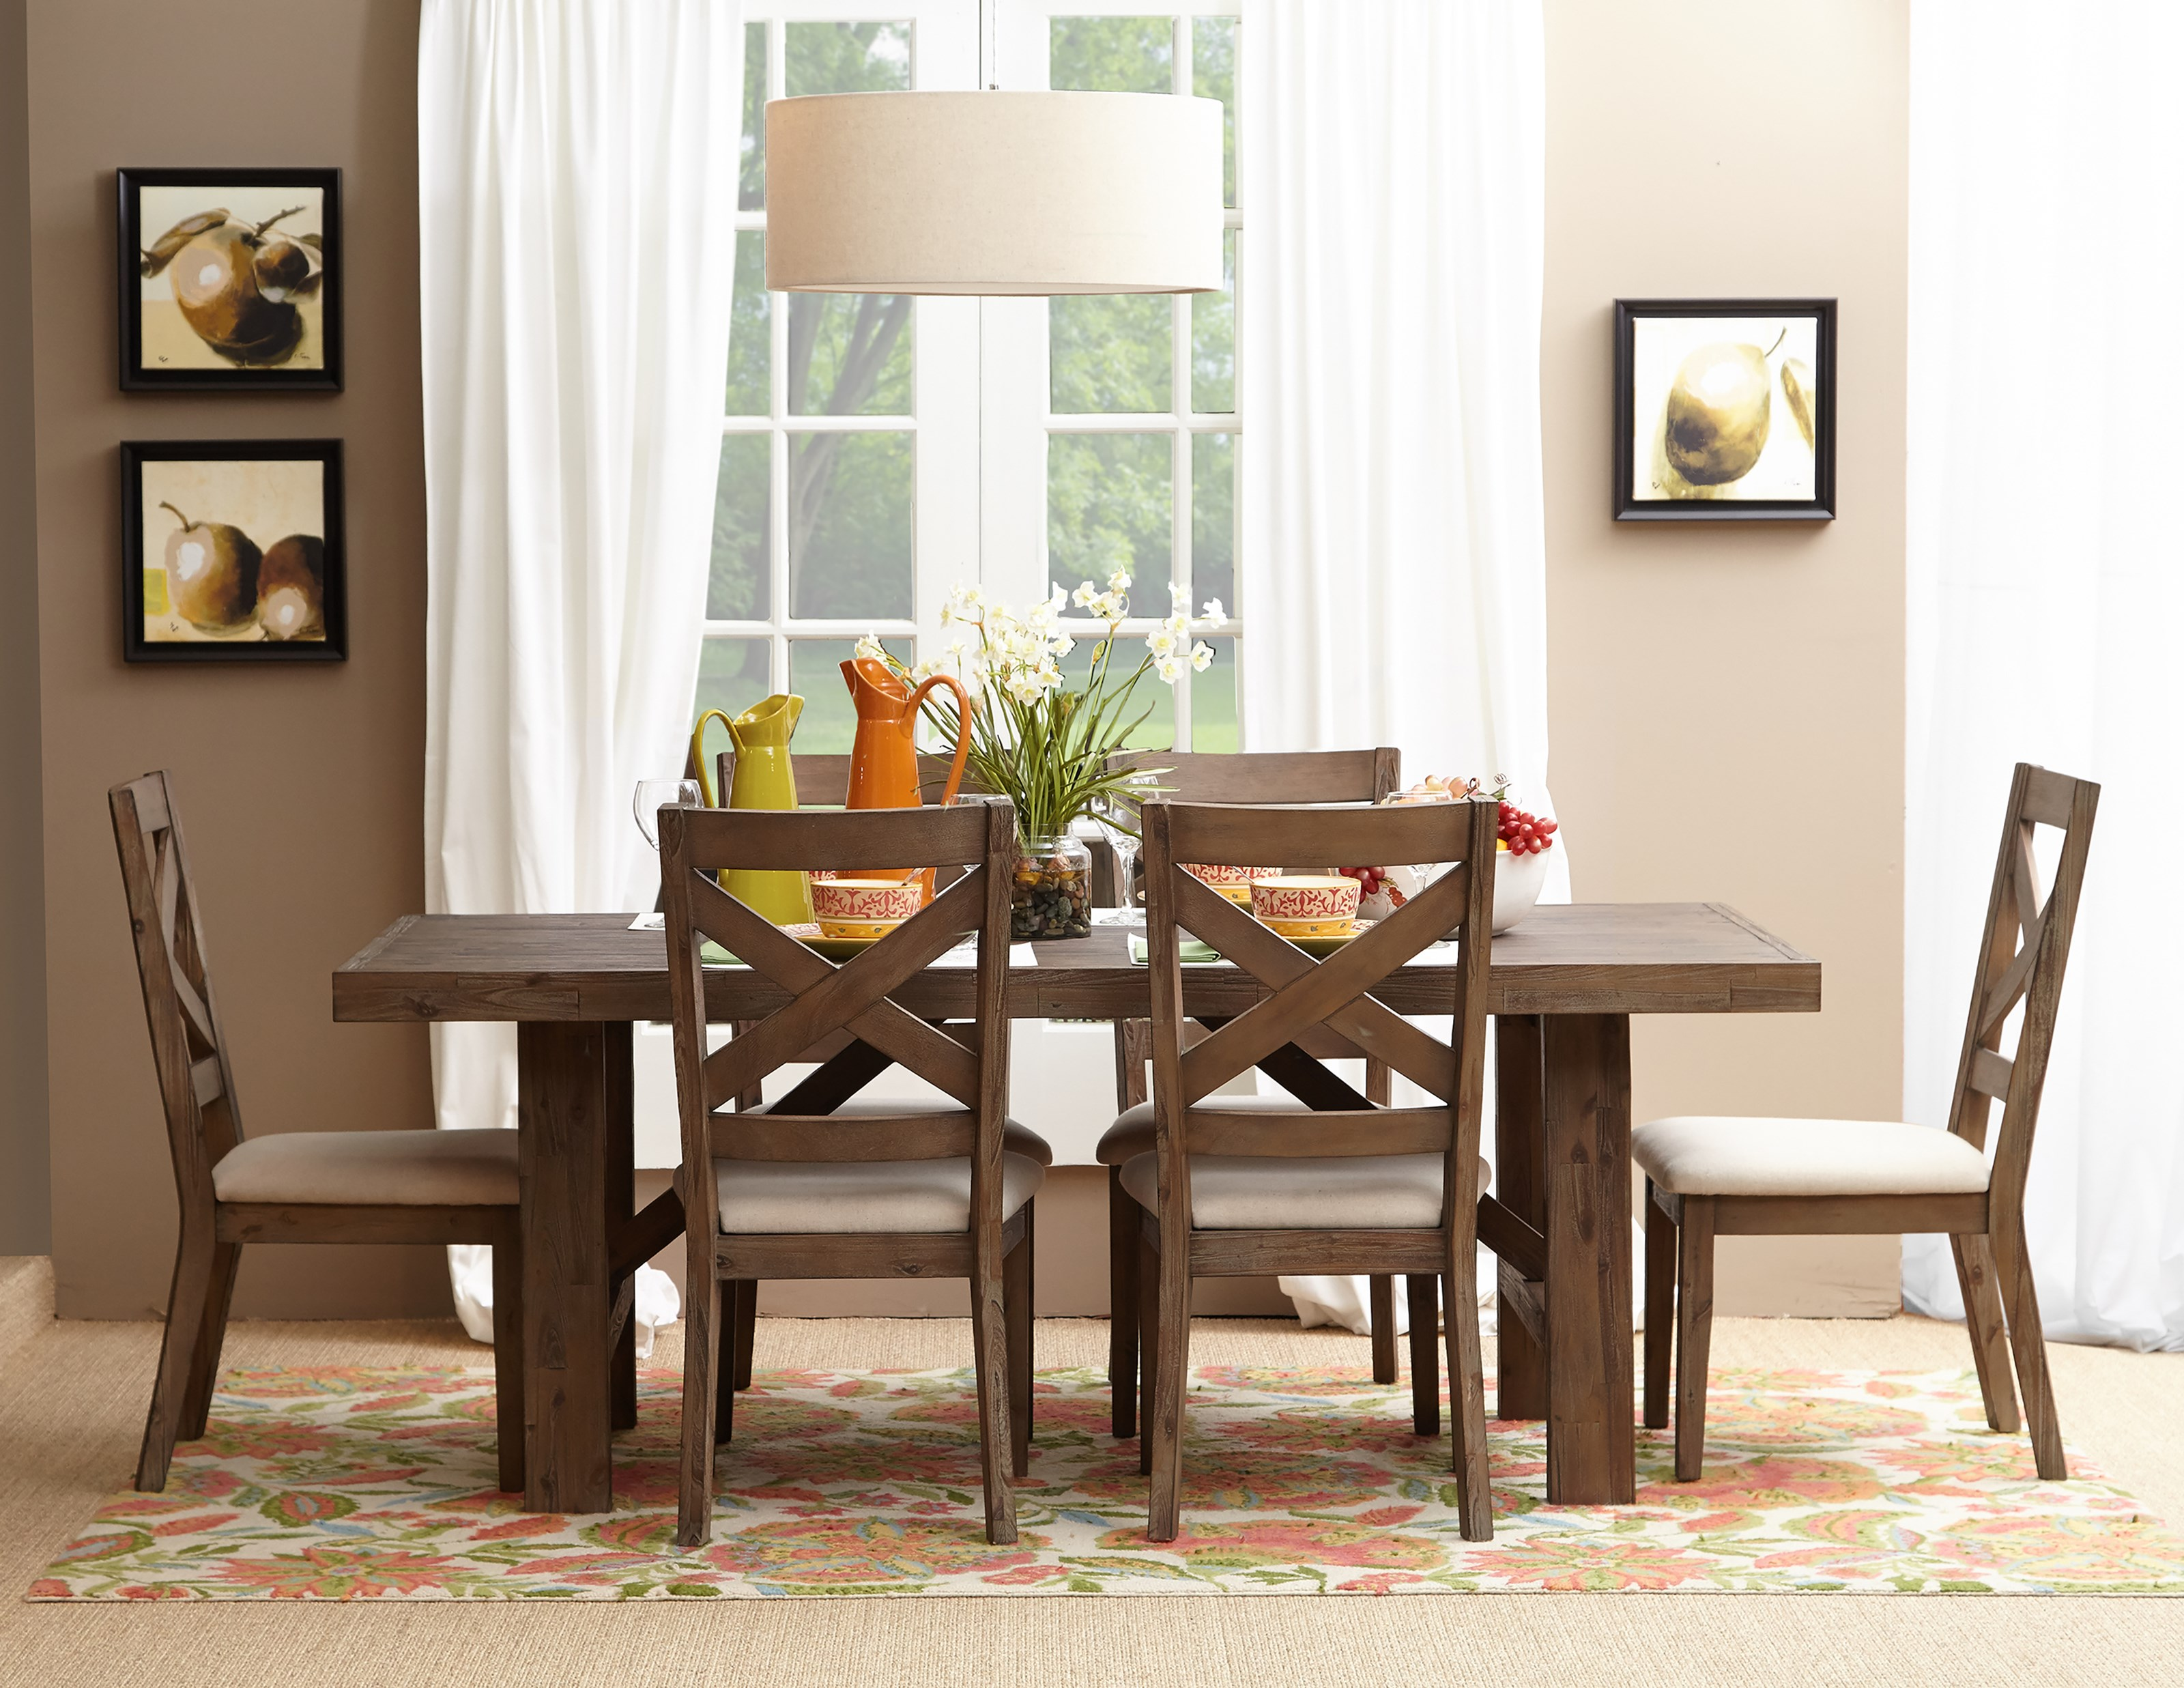 Jofran Hampton Road Trestle Dining Table And Chair Set   Item Number: 872 79